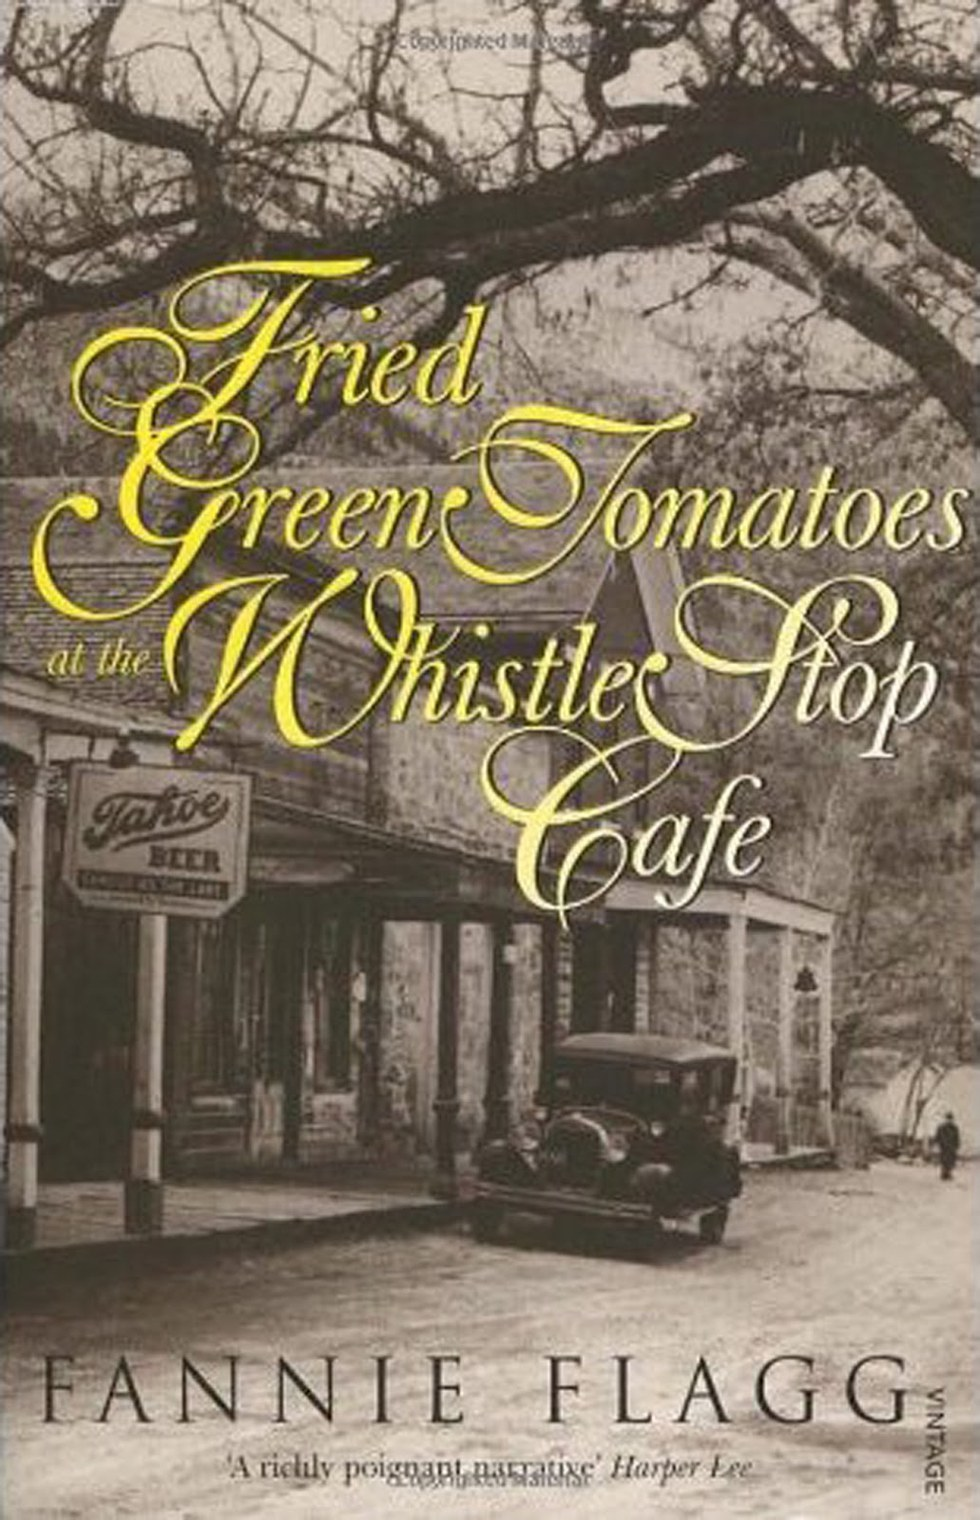 the theme of love in fried green tomatoes at the whistle stop cafe by frannie flagg Fried green tomatoes at the whistle stop café is the story of the town of whistle stop, alabama, and its residents over the course of three generations most of the story centers on ruth jamison and idgie threadgoode, two best friends (and assumed lovers) who impacted the lives of.